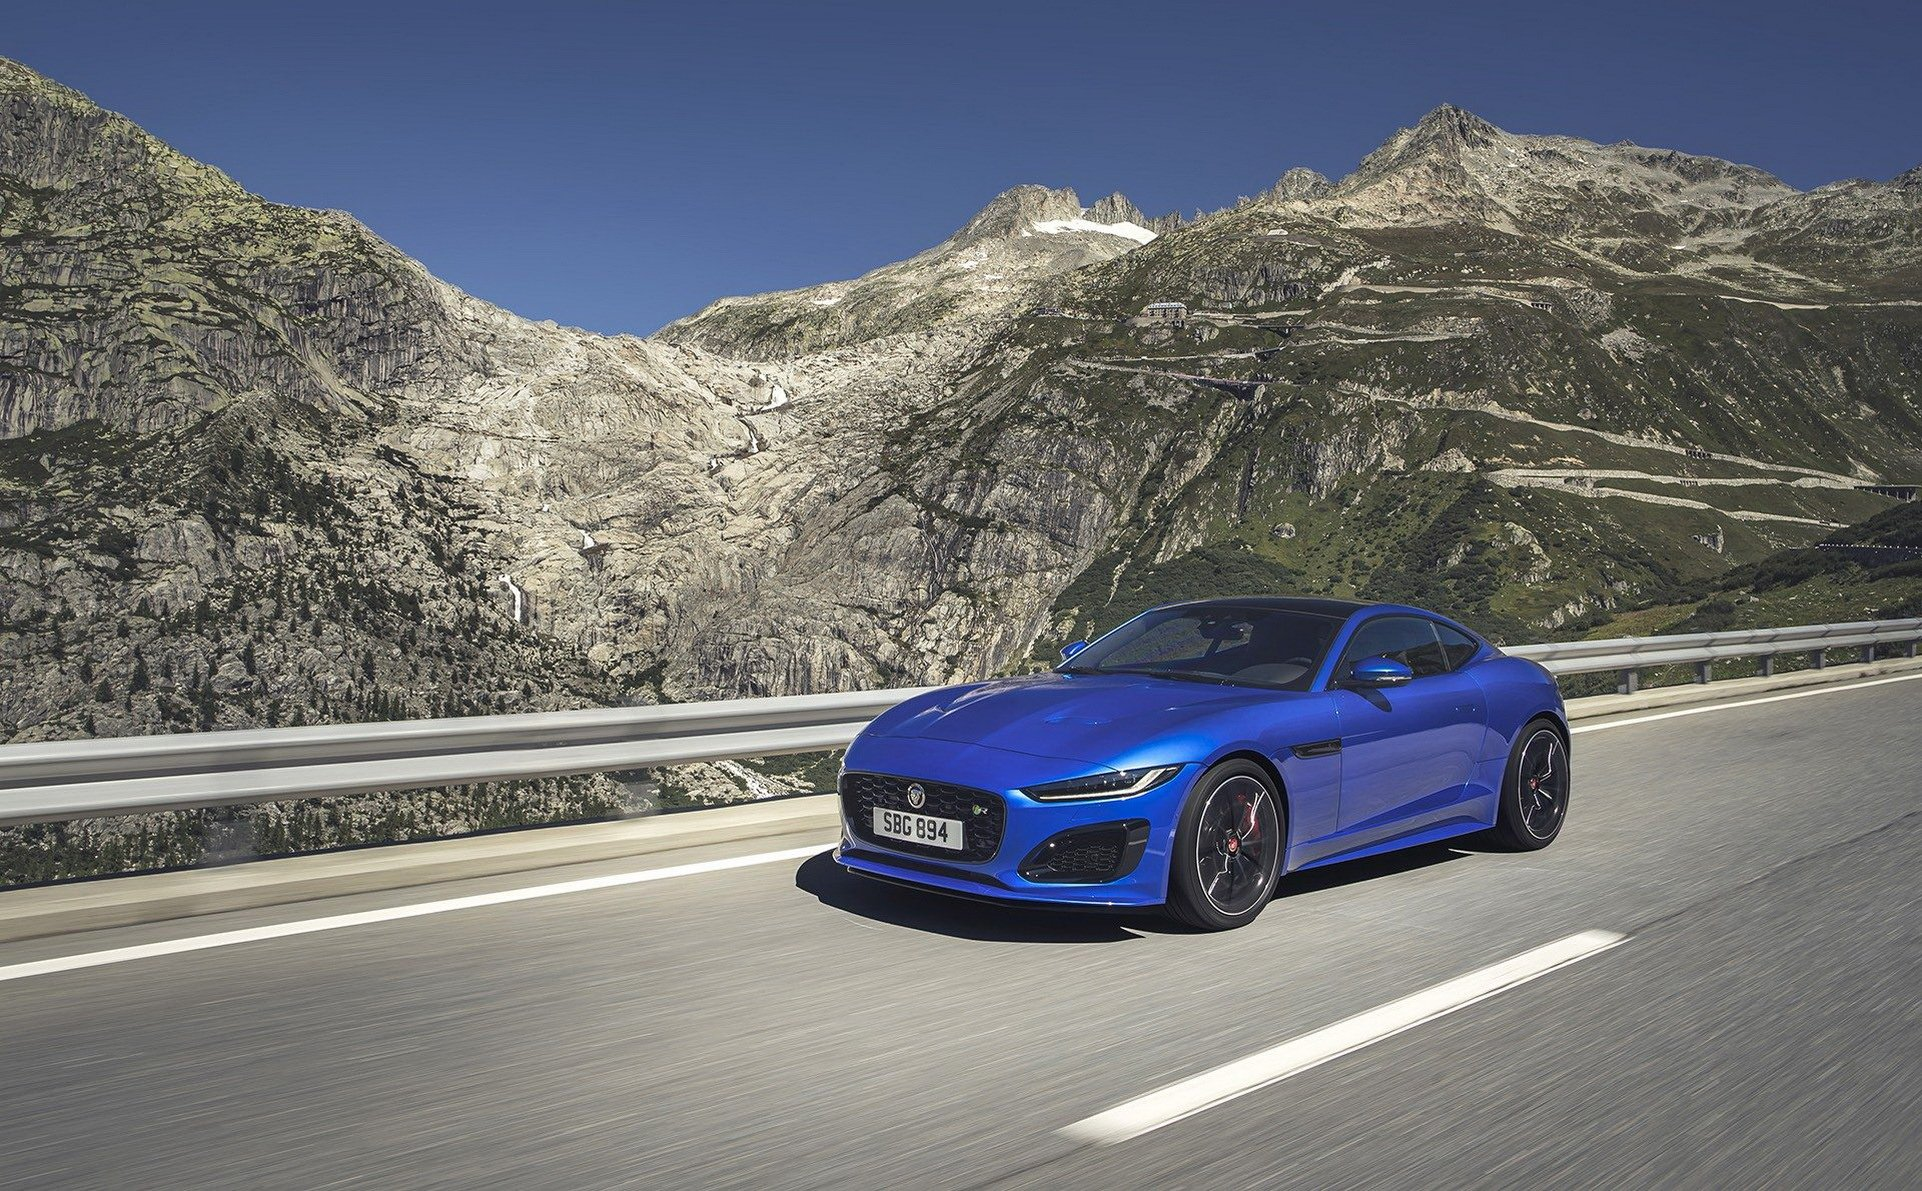 2021 Jaguar F-Type Revealed With Audi-Like Lights and ...